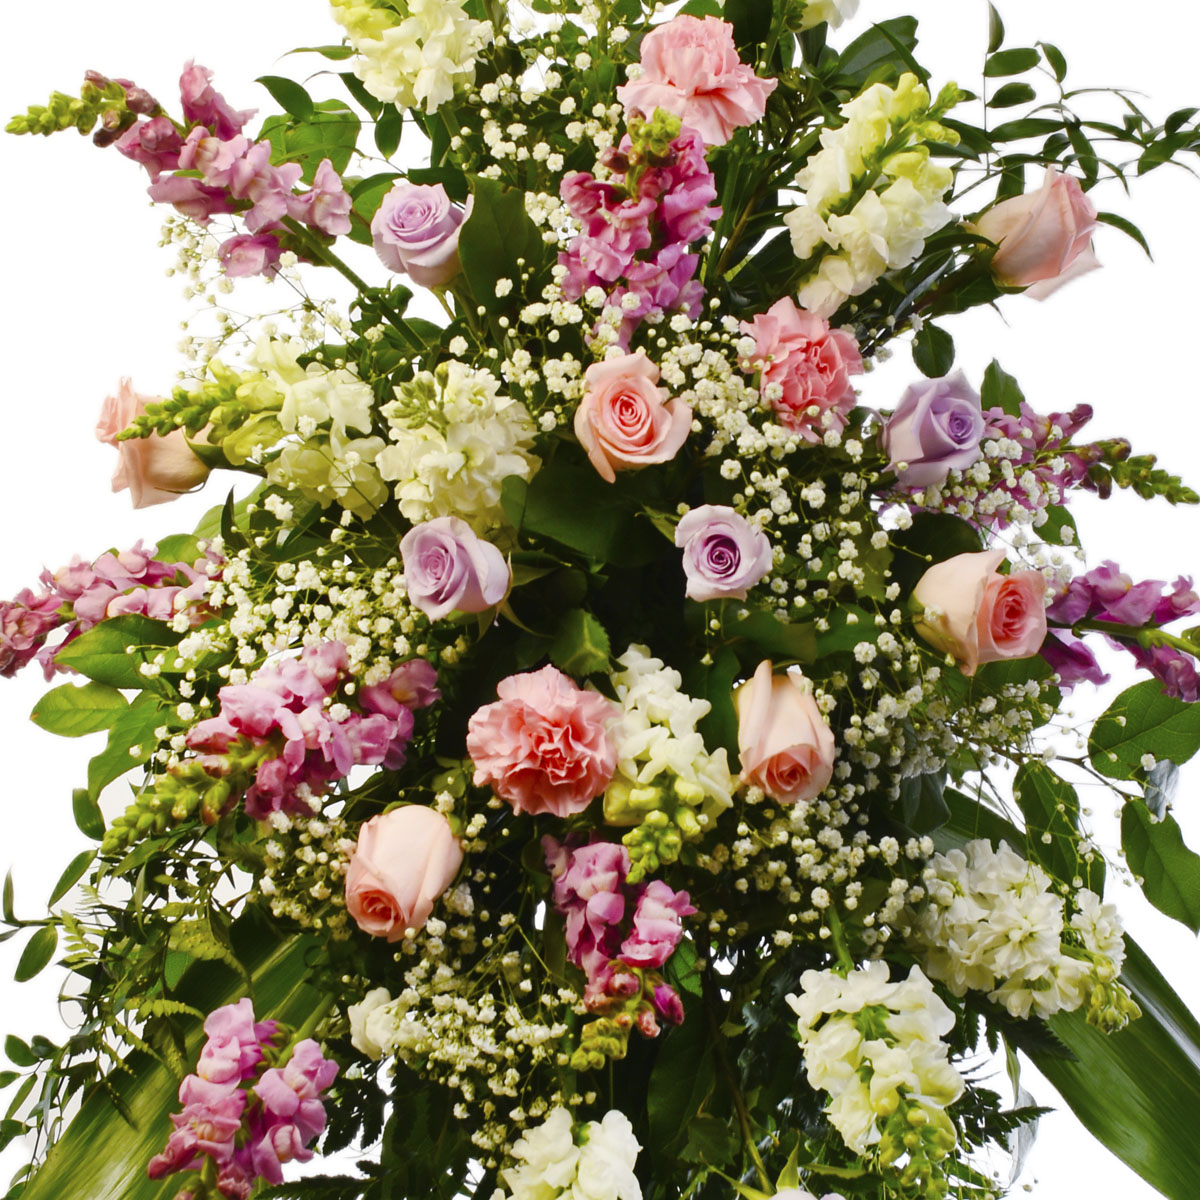 Funeral Flower Wreaths and Standing Sprays | Adele Rae